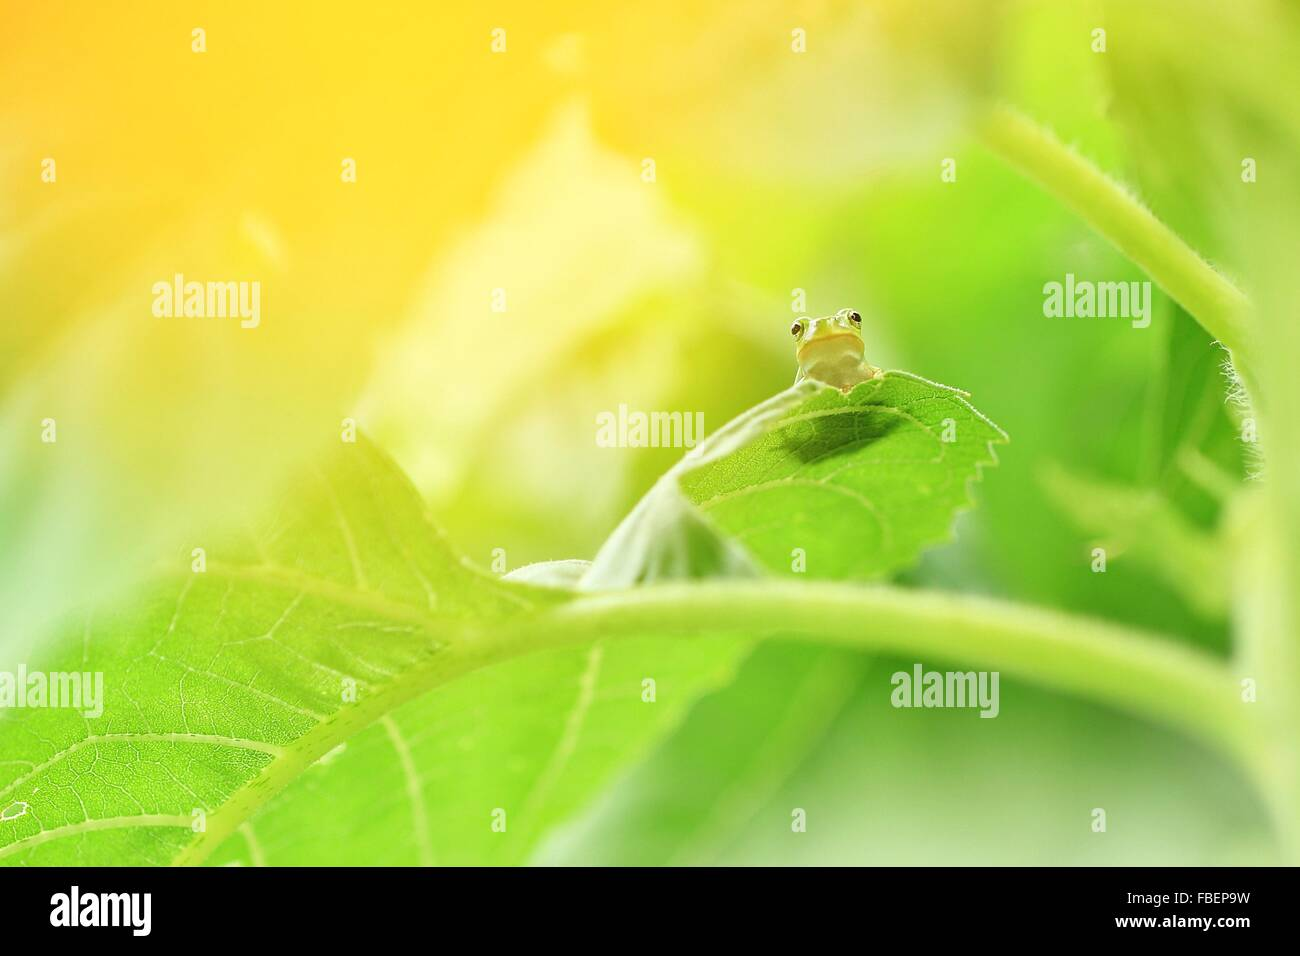 Close-Up Of Frog On Leaf - Stock Image